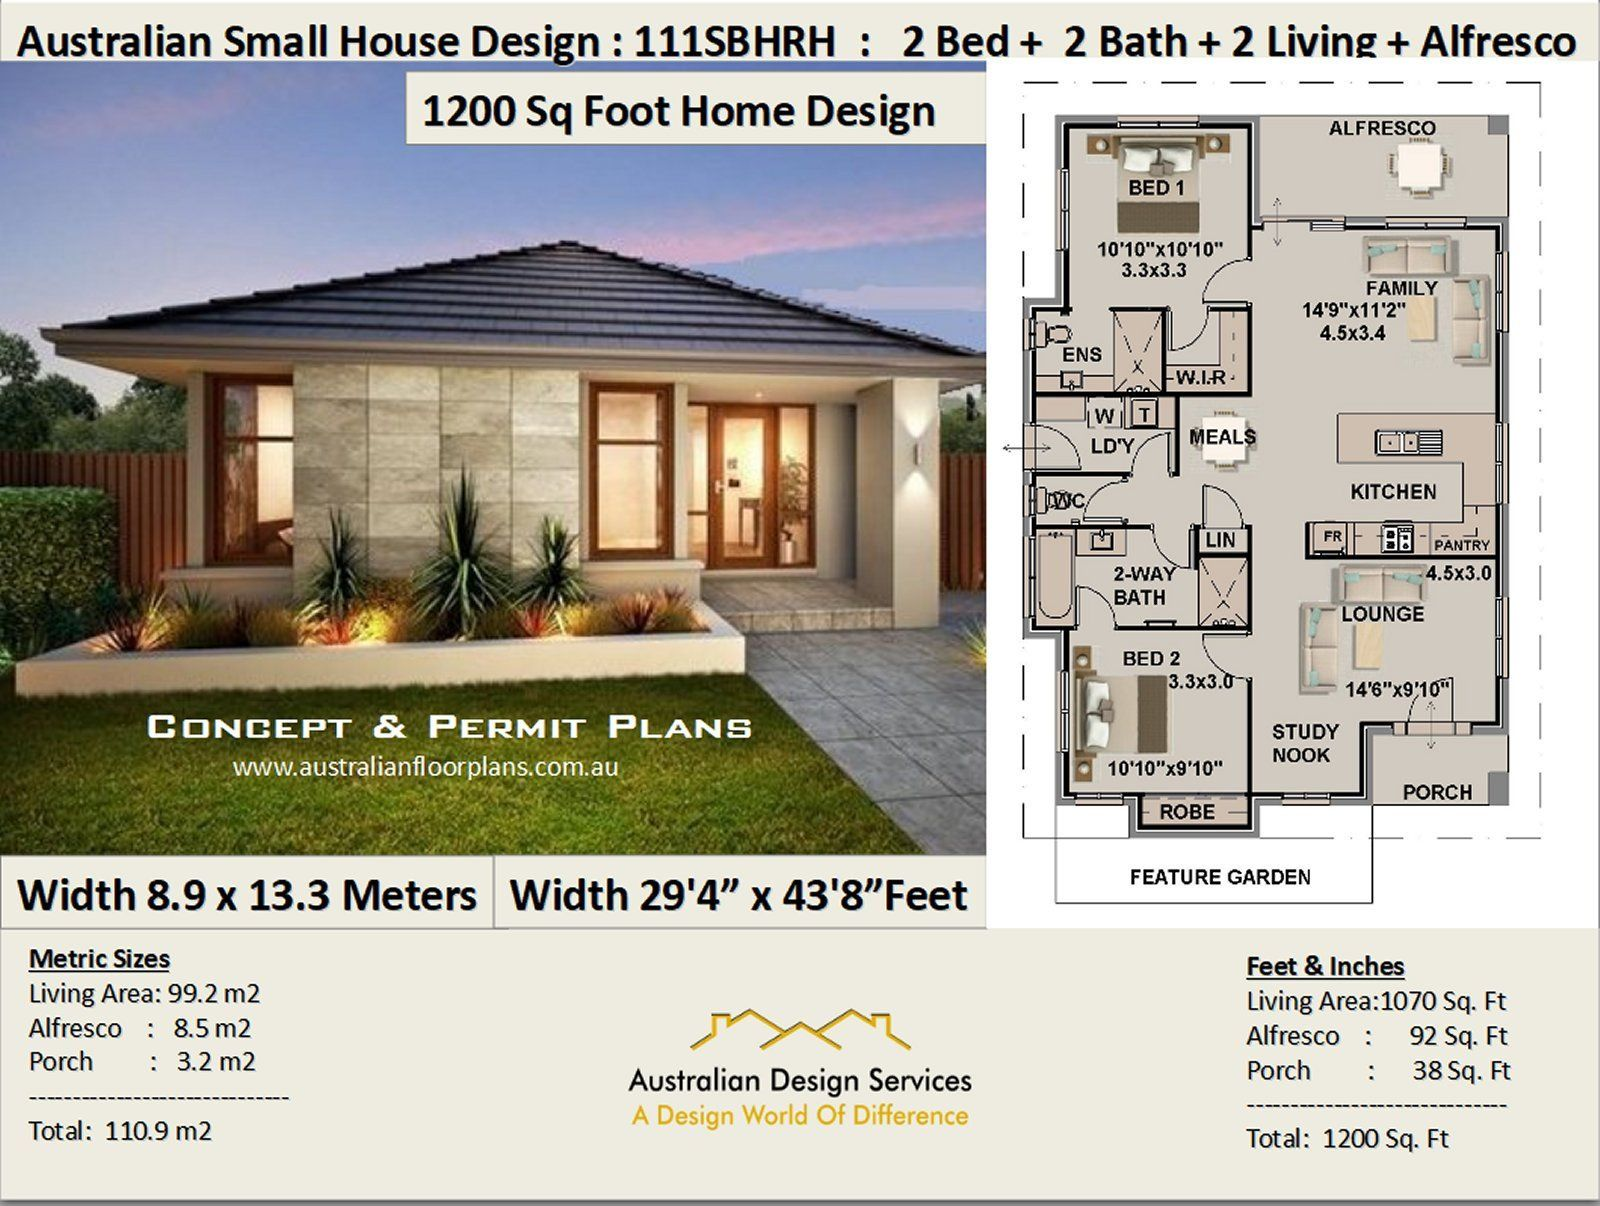 1200 Sq Foot House Plan Or 110 9 M2 2 Bedroom 2 Etsy Modern House Plans 1200 Sq Ft House Small House Design